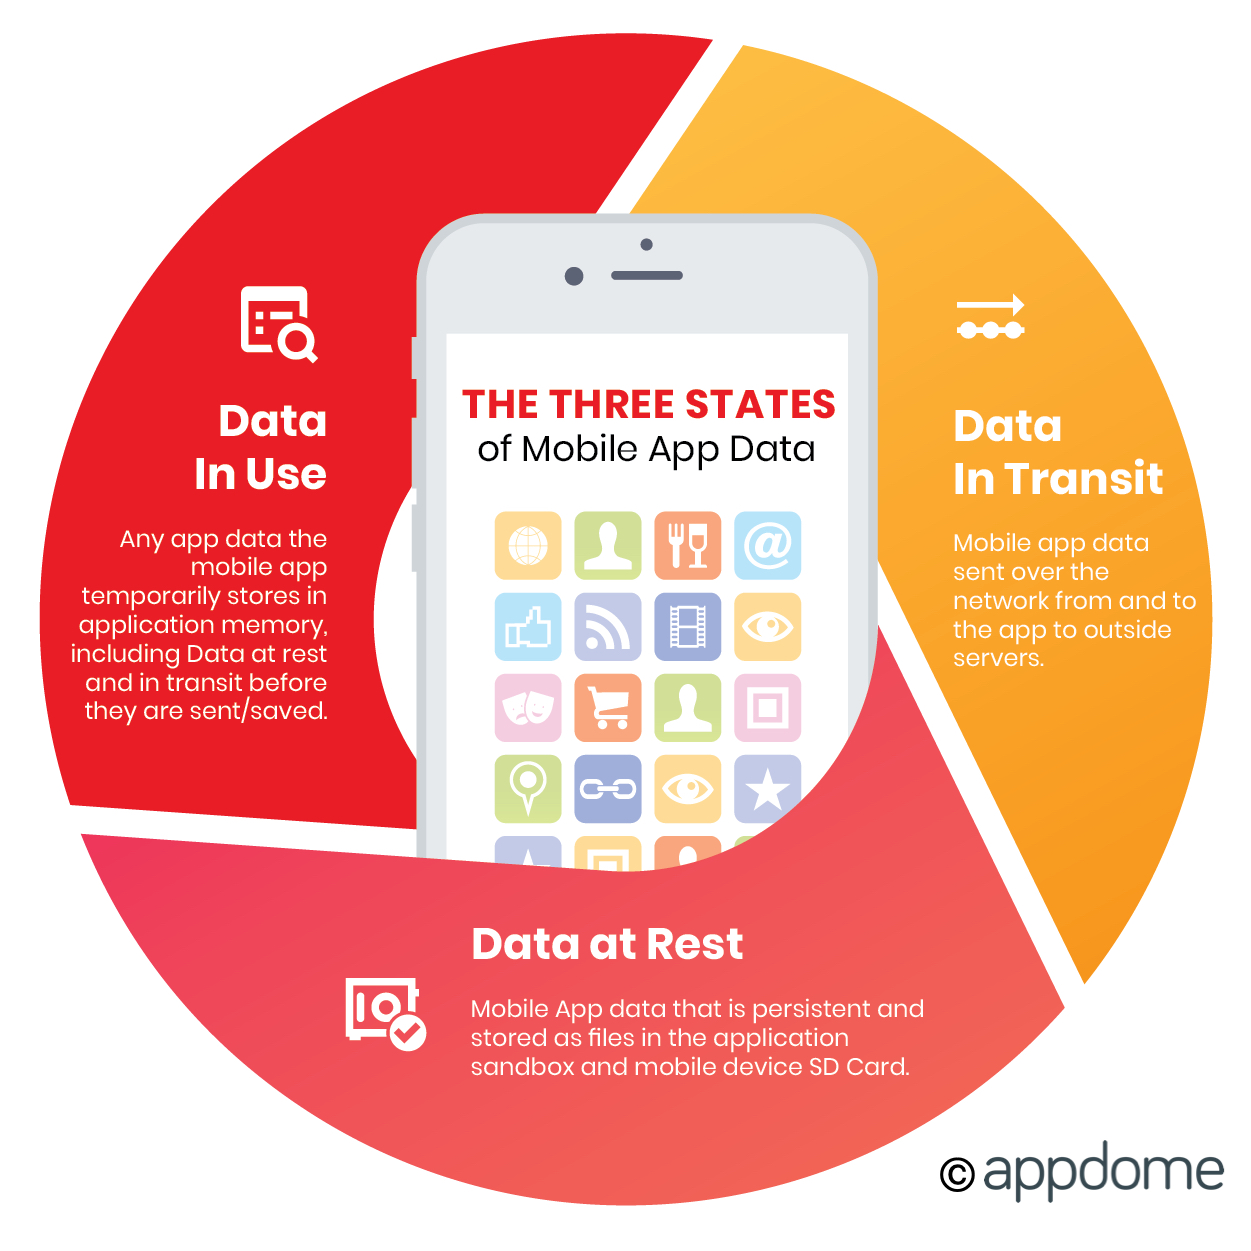 The Three States Of Mobile App Data: Data at rest, data in transit and data in use